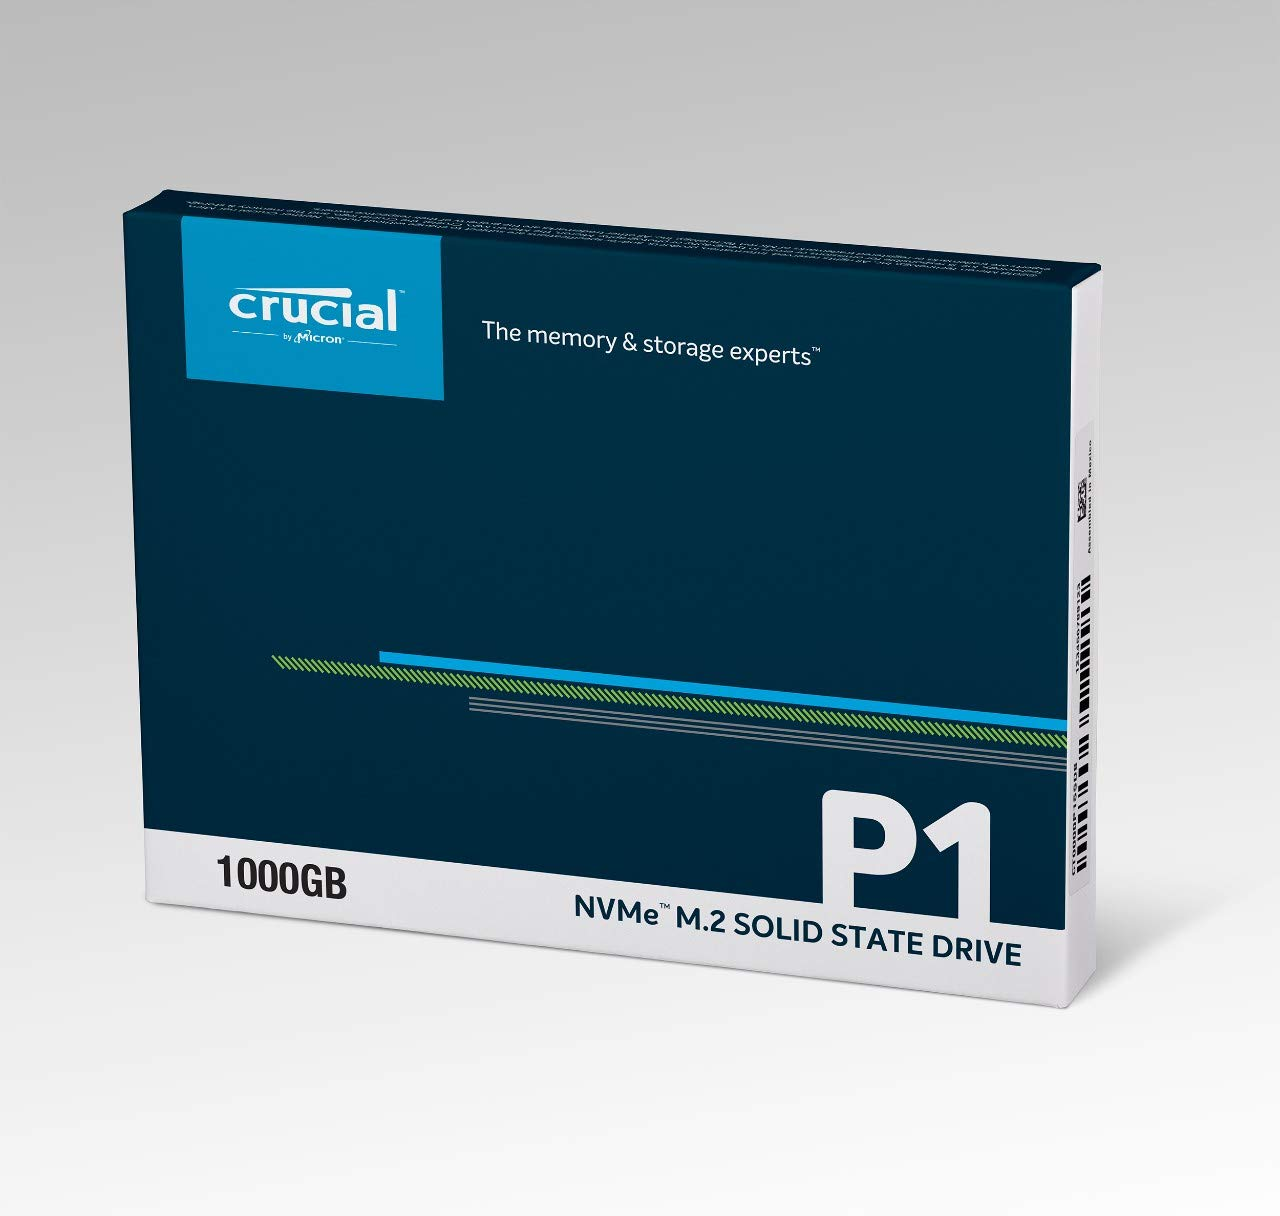 Crucial P1 1TB 3D NAND NVMe PCIe M.2 SSD - CT1000P1SSD8 by Crucial (Image #2)